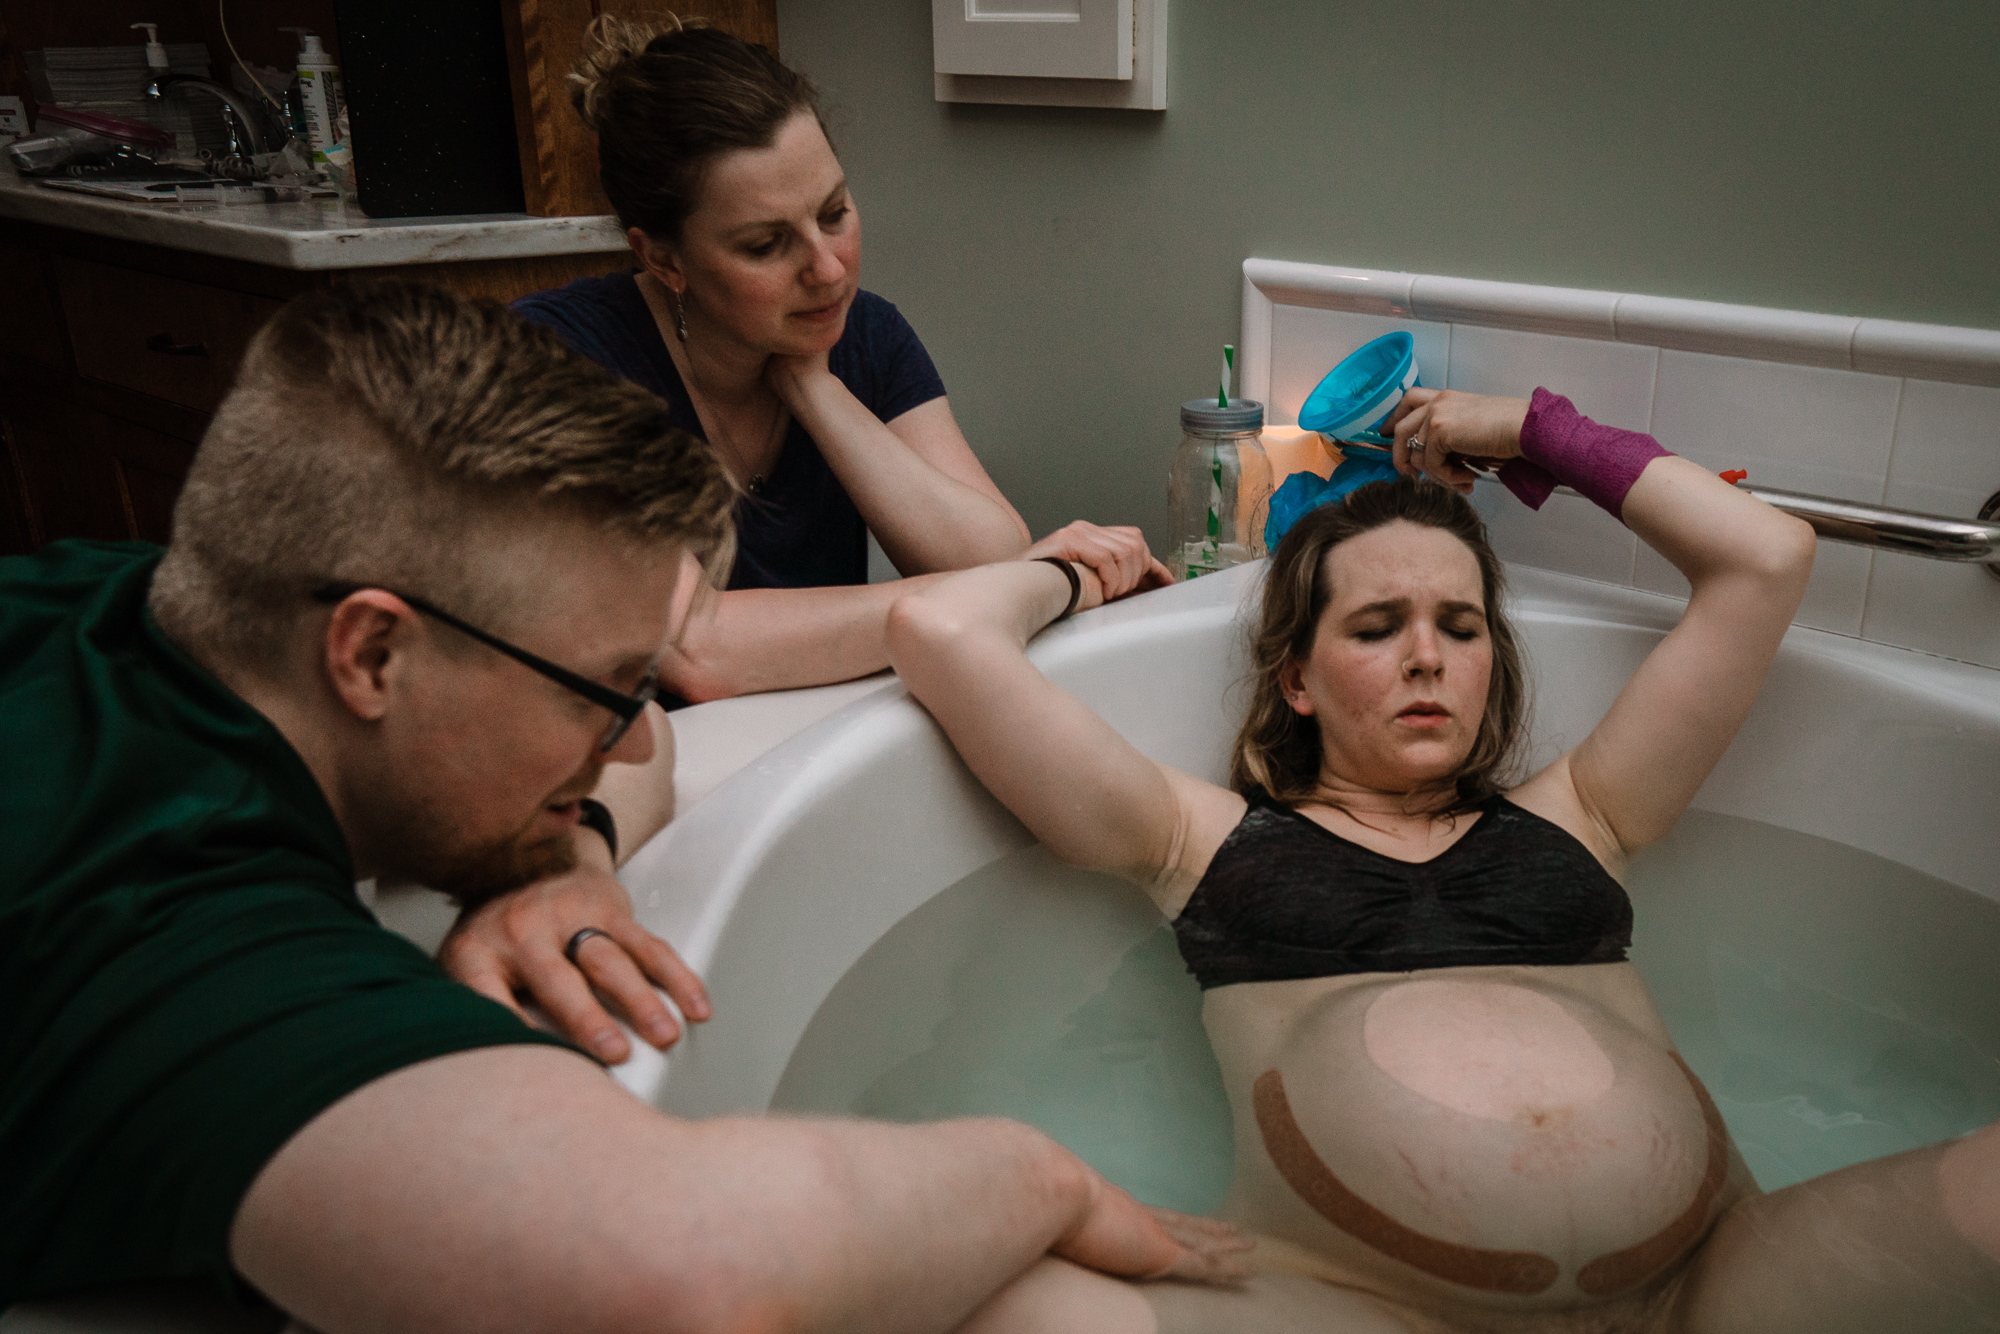 Minnesota Birth Photography by Meredith Westin-June 06, 2019-013012.jpg